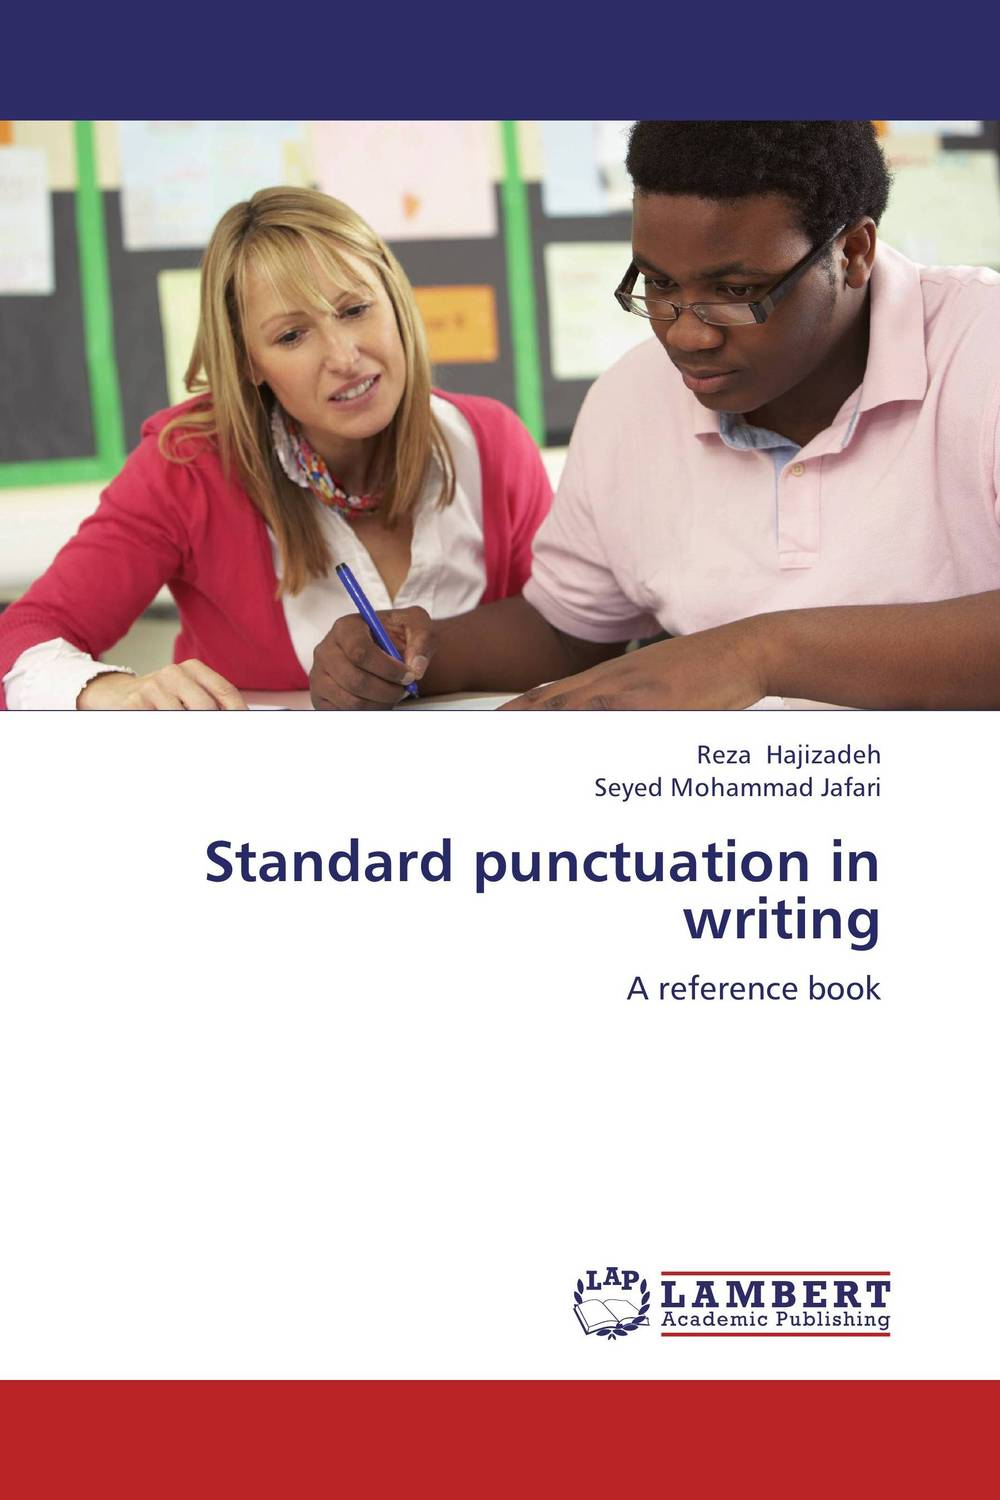 Standard punctuation in writing